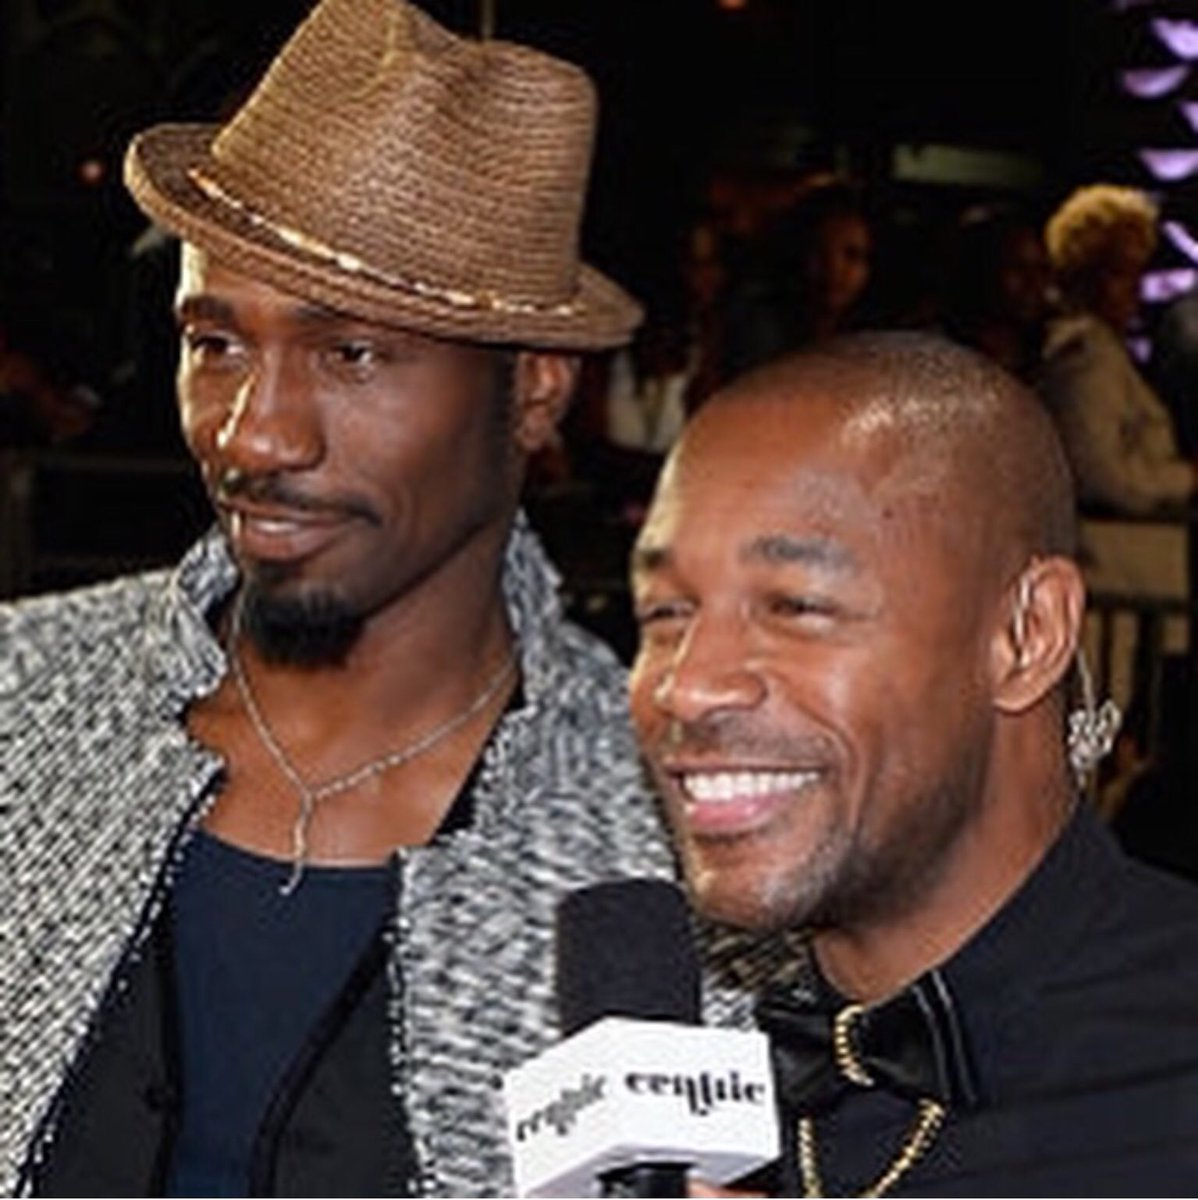 #flashbackfriday pic of @therealtank interviewing me on the #redcarpet #soultrainawardsredcarpet